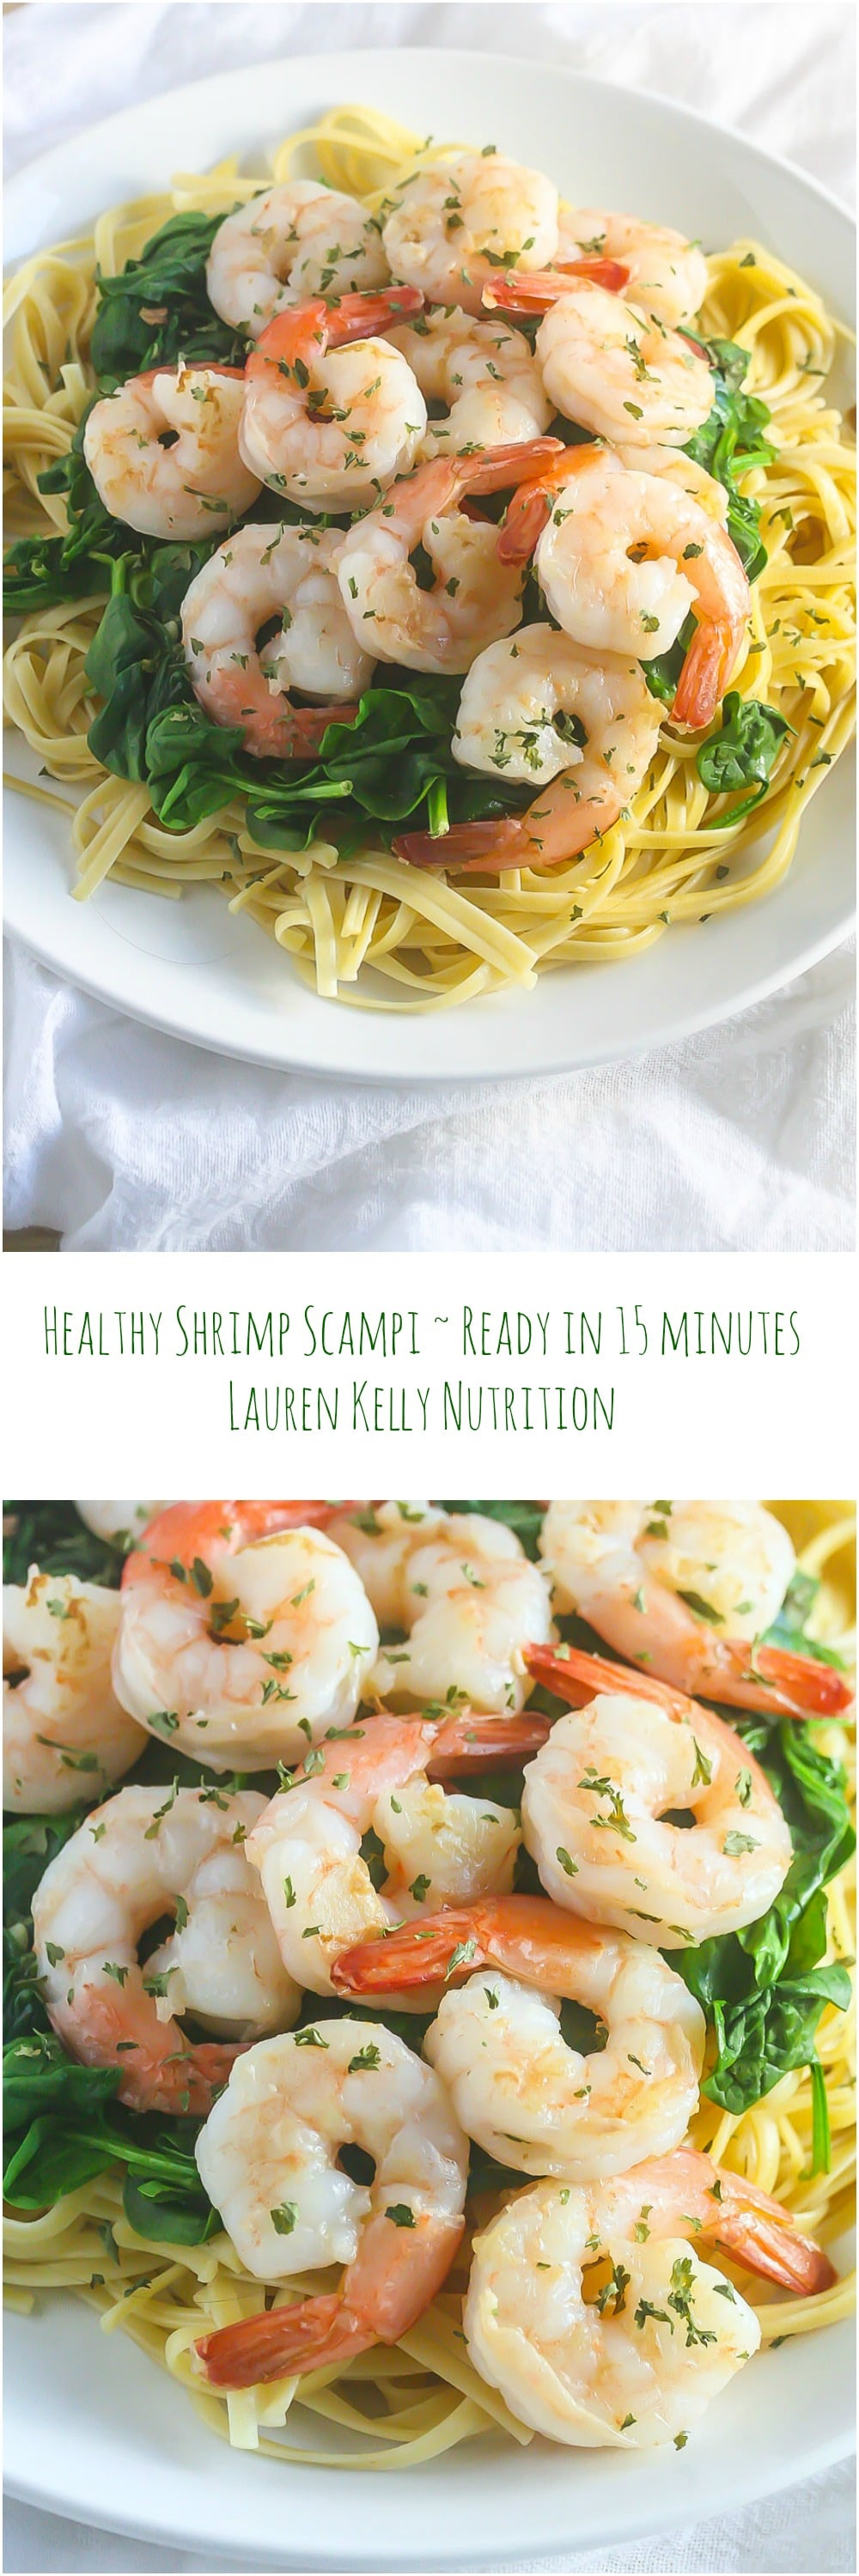 This Healthy Shrimp Scampi is so delicious and is ready in 15 minutes! www.laurenkellynutrition.com